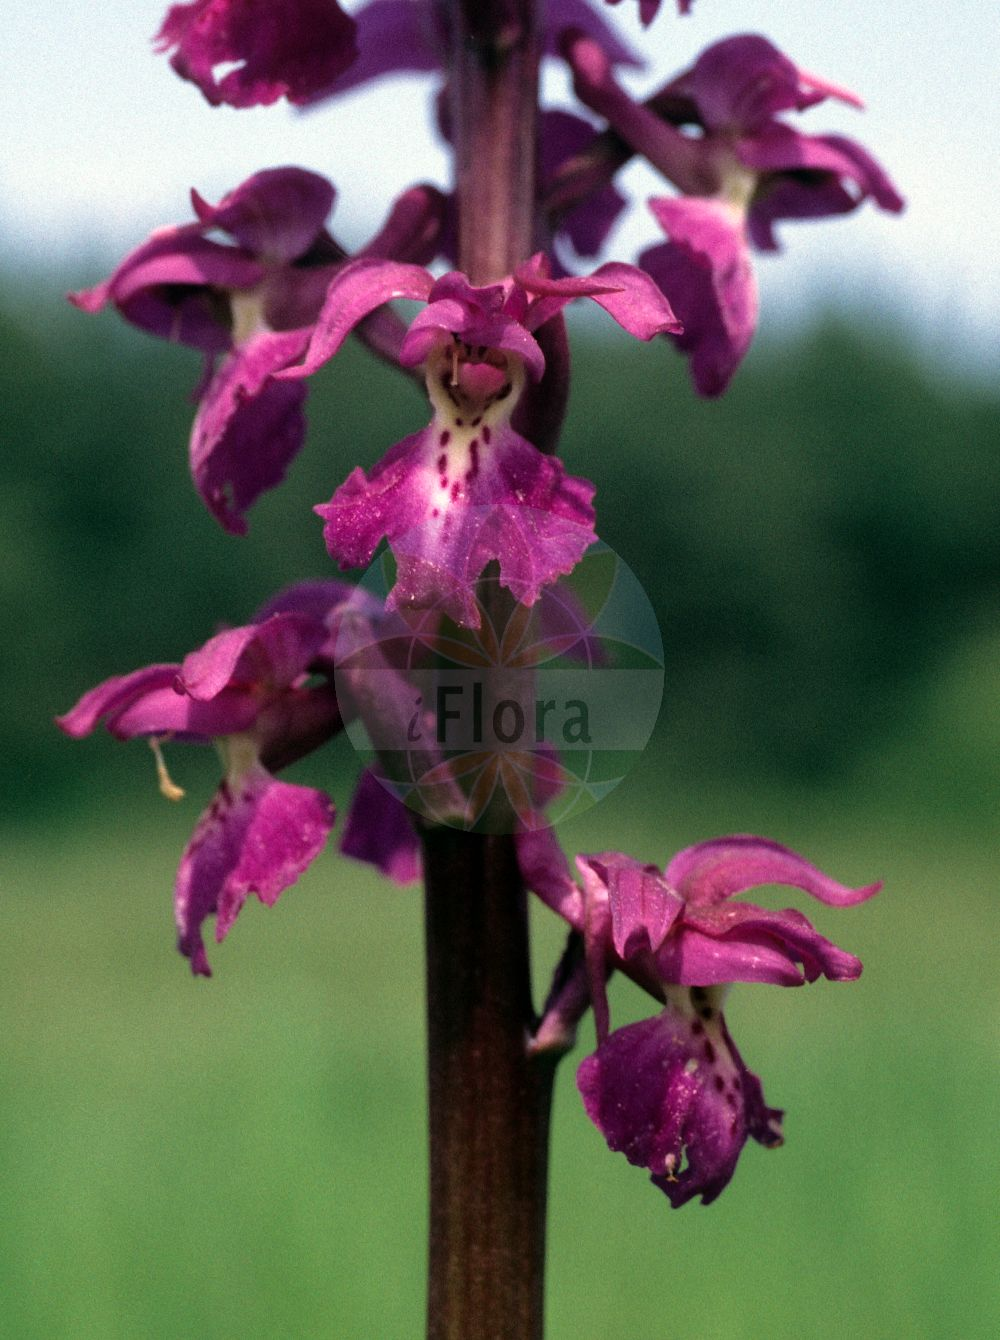 Foto von Orchis mascula (Maennliches Knabenkraut - Early-purple Orchid). ---- Photo of Orchis mascula (Maennliches Knabenkraut - Early-purple Orchid).(Orchis mascula,Maennliches Knabenkraut,Early-purple Orchid,Androrchis mascula,Orchis morio var. mascula,Kuckucks-Knabenkraut,Blue Butcher,Blue Butcher Orchid,Male Orchid,Orchis,Knabenkraut,Orchidaceae,Knabenkrautgewaechse;Orchideen,Orchid family)